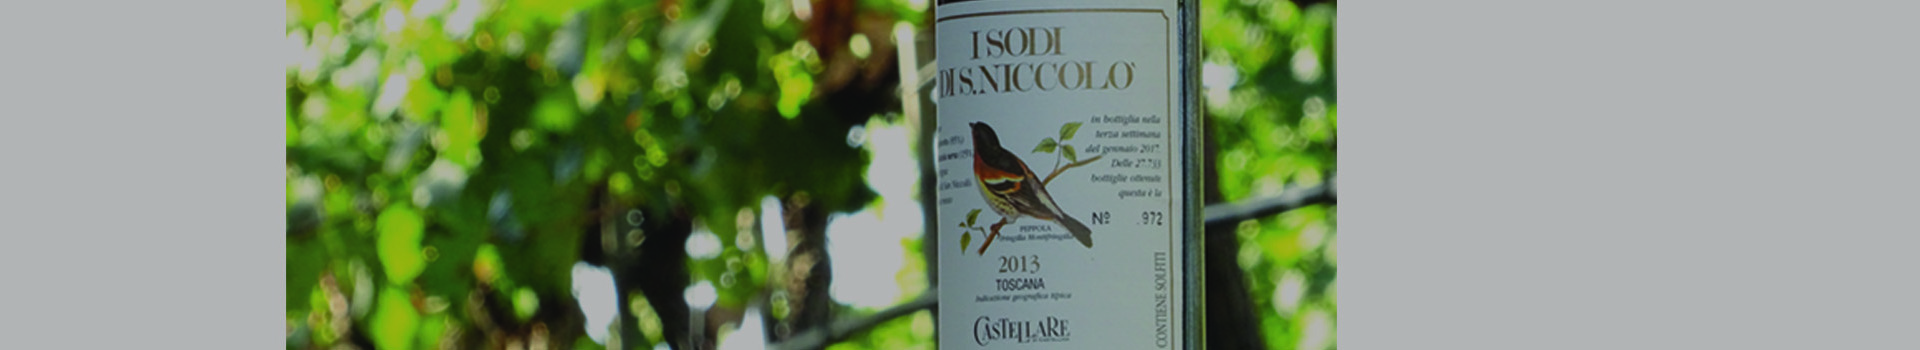 TOP RATINGS FOR I SODI DI SAN NICCOLO' 2013